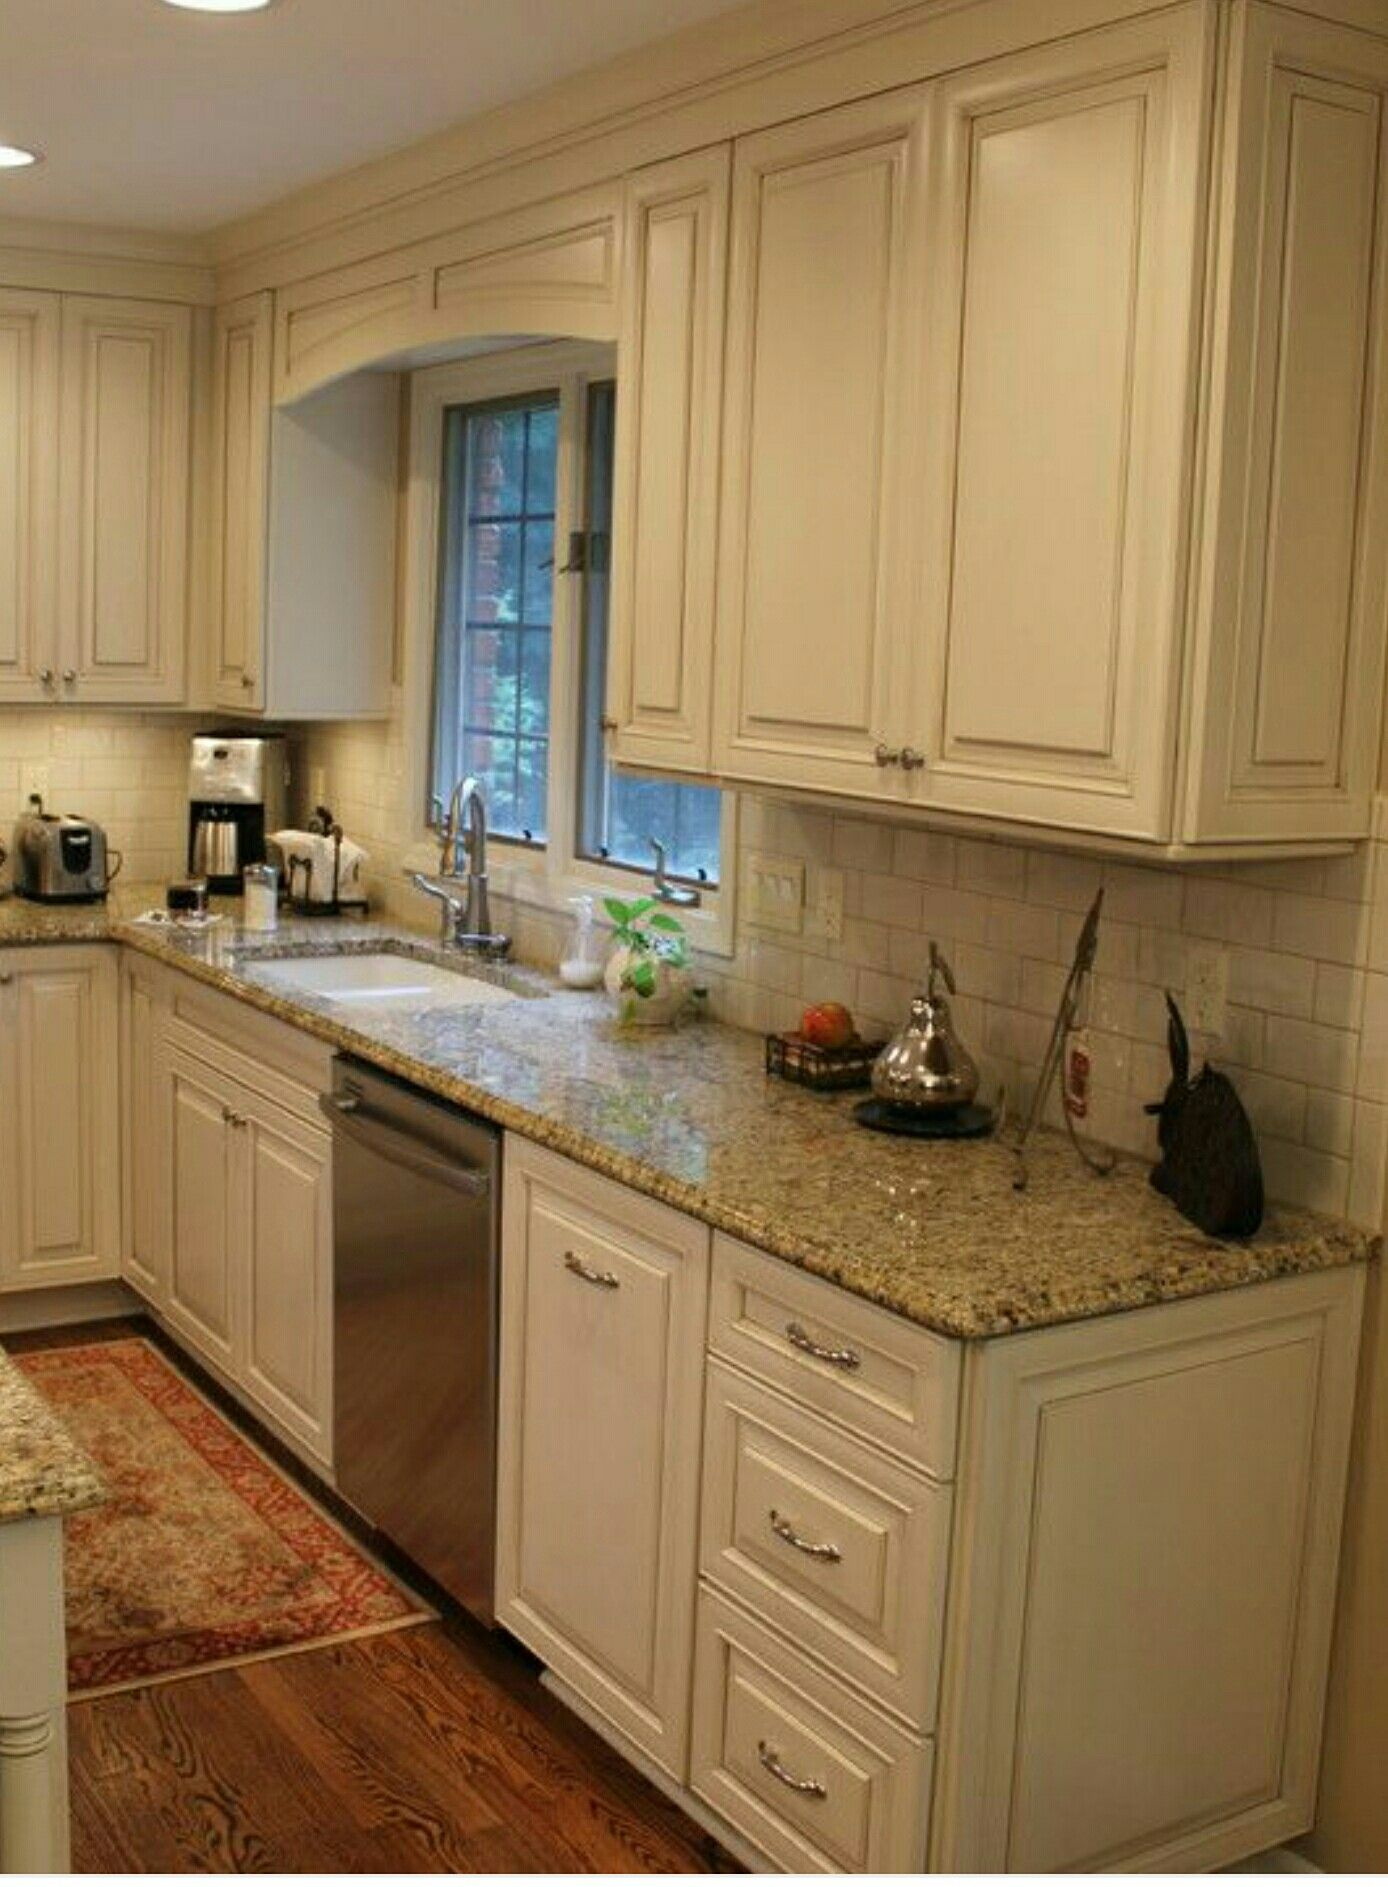 New Cabinet and Countertop Combinations